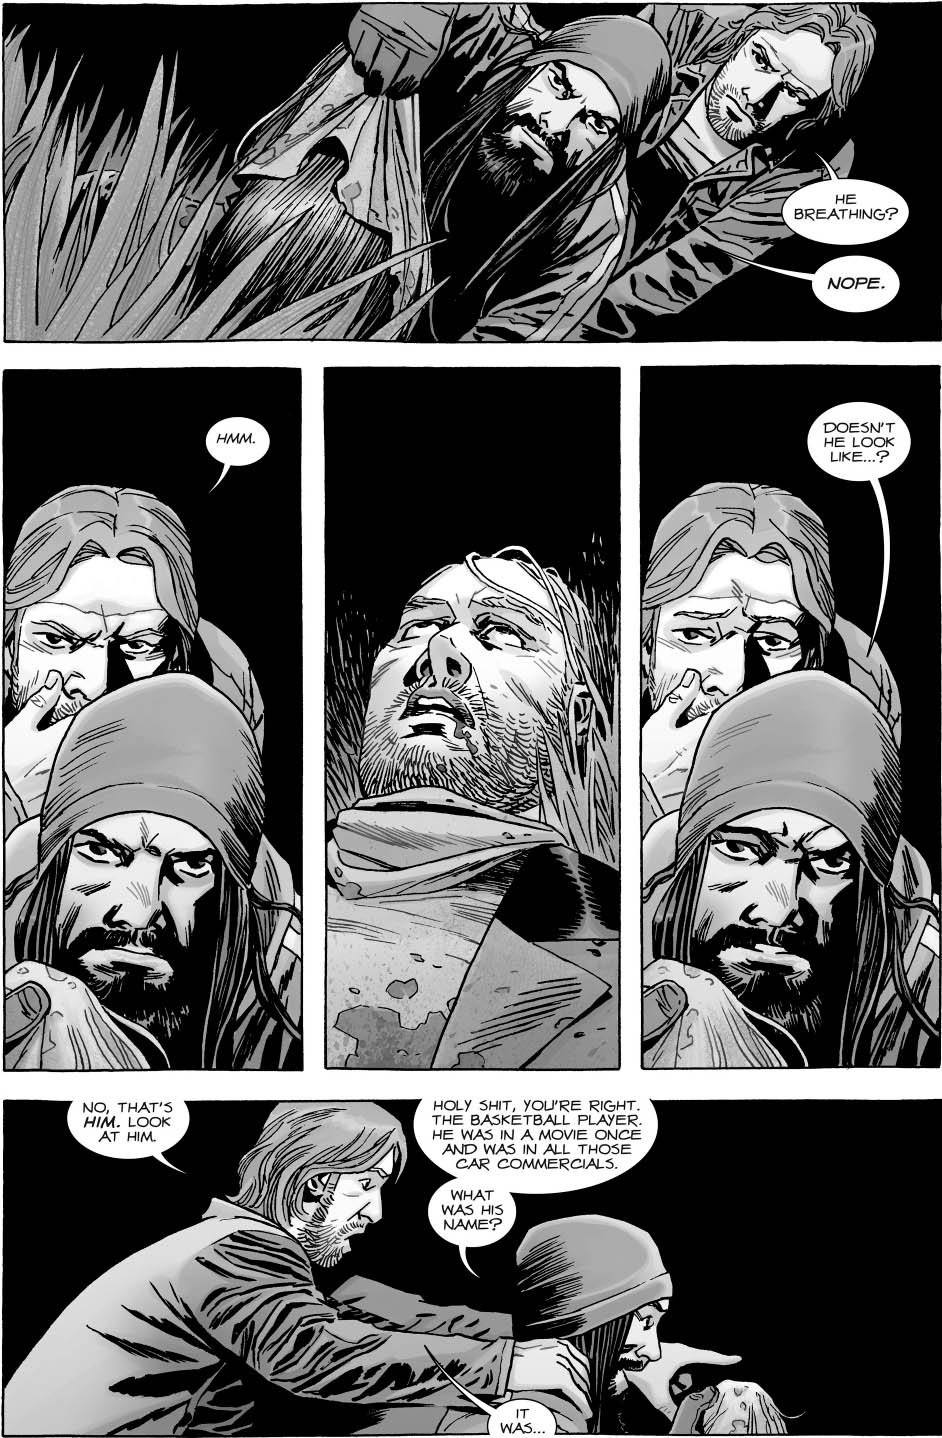 Betas Real Identity The Walking Dead  Comicnewbies